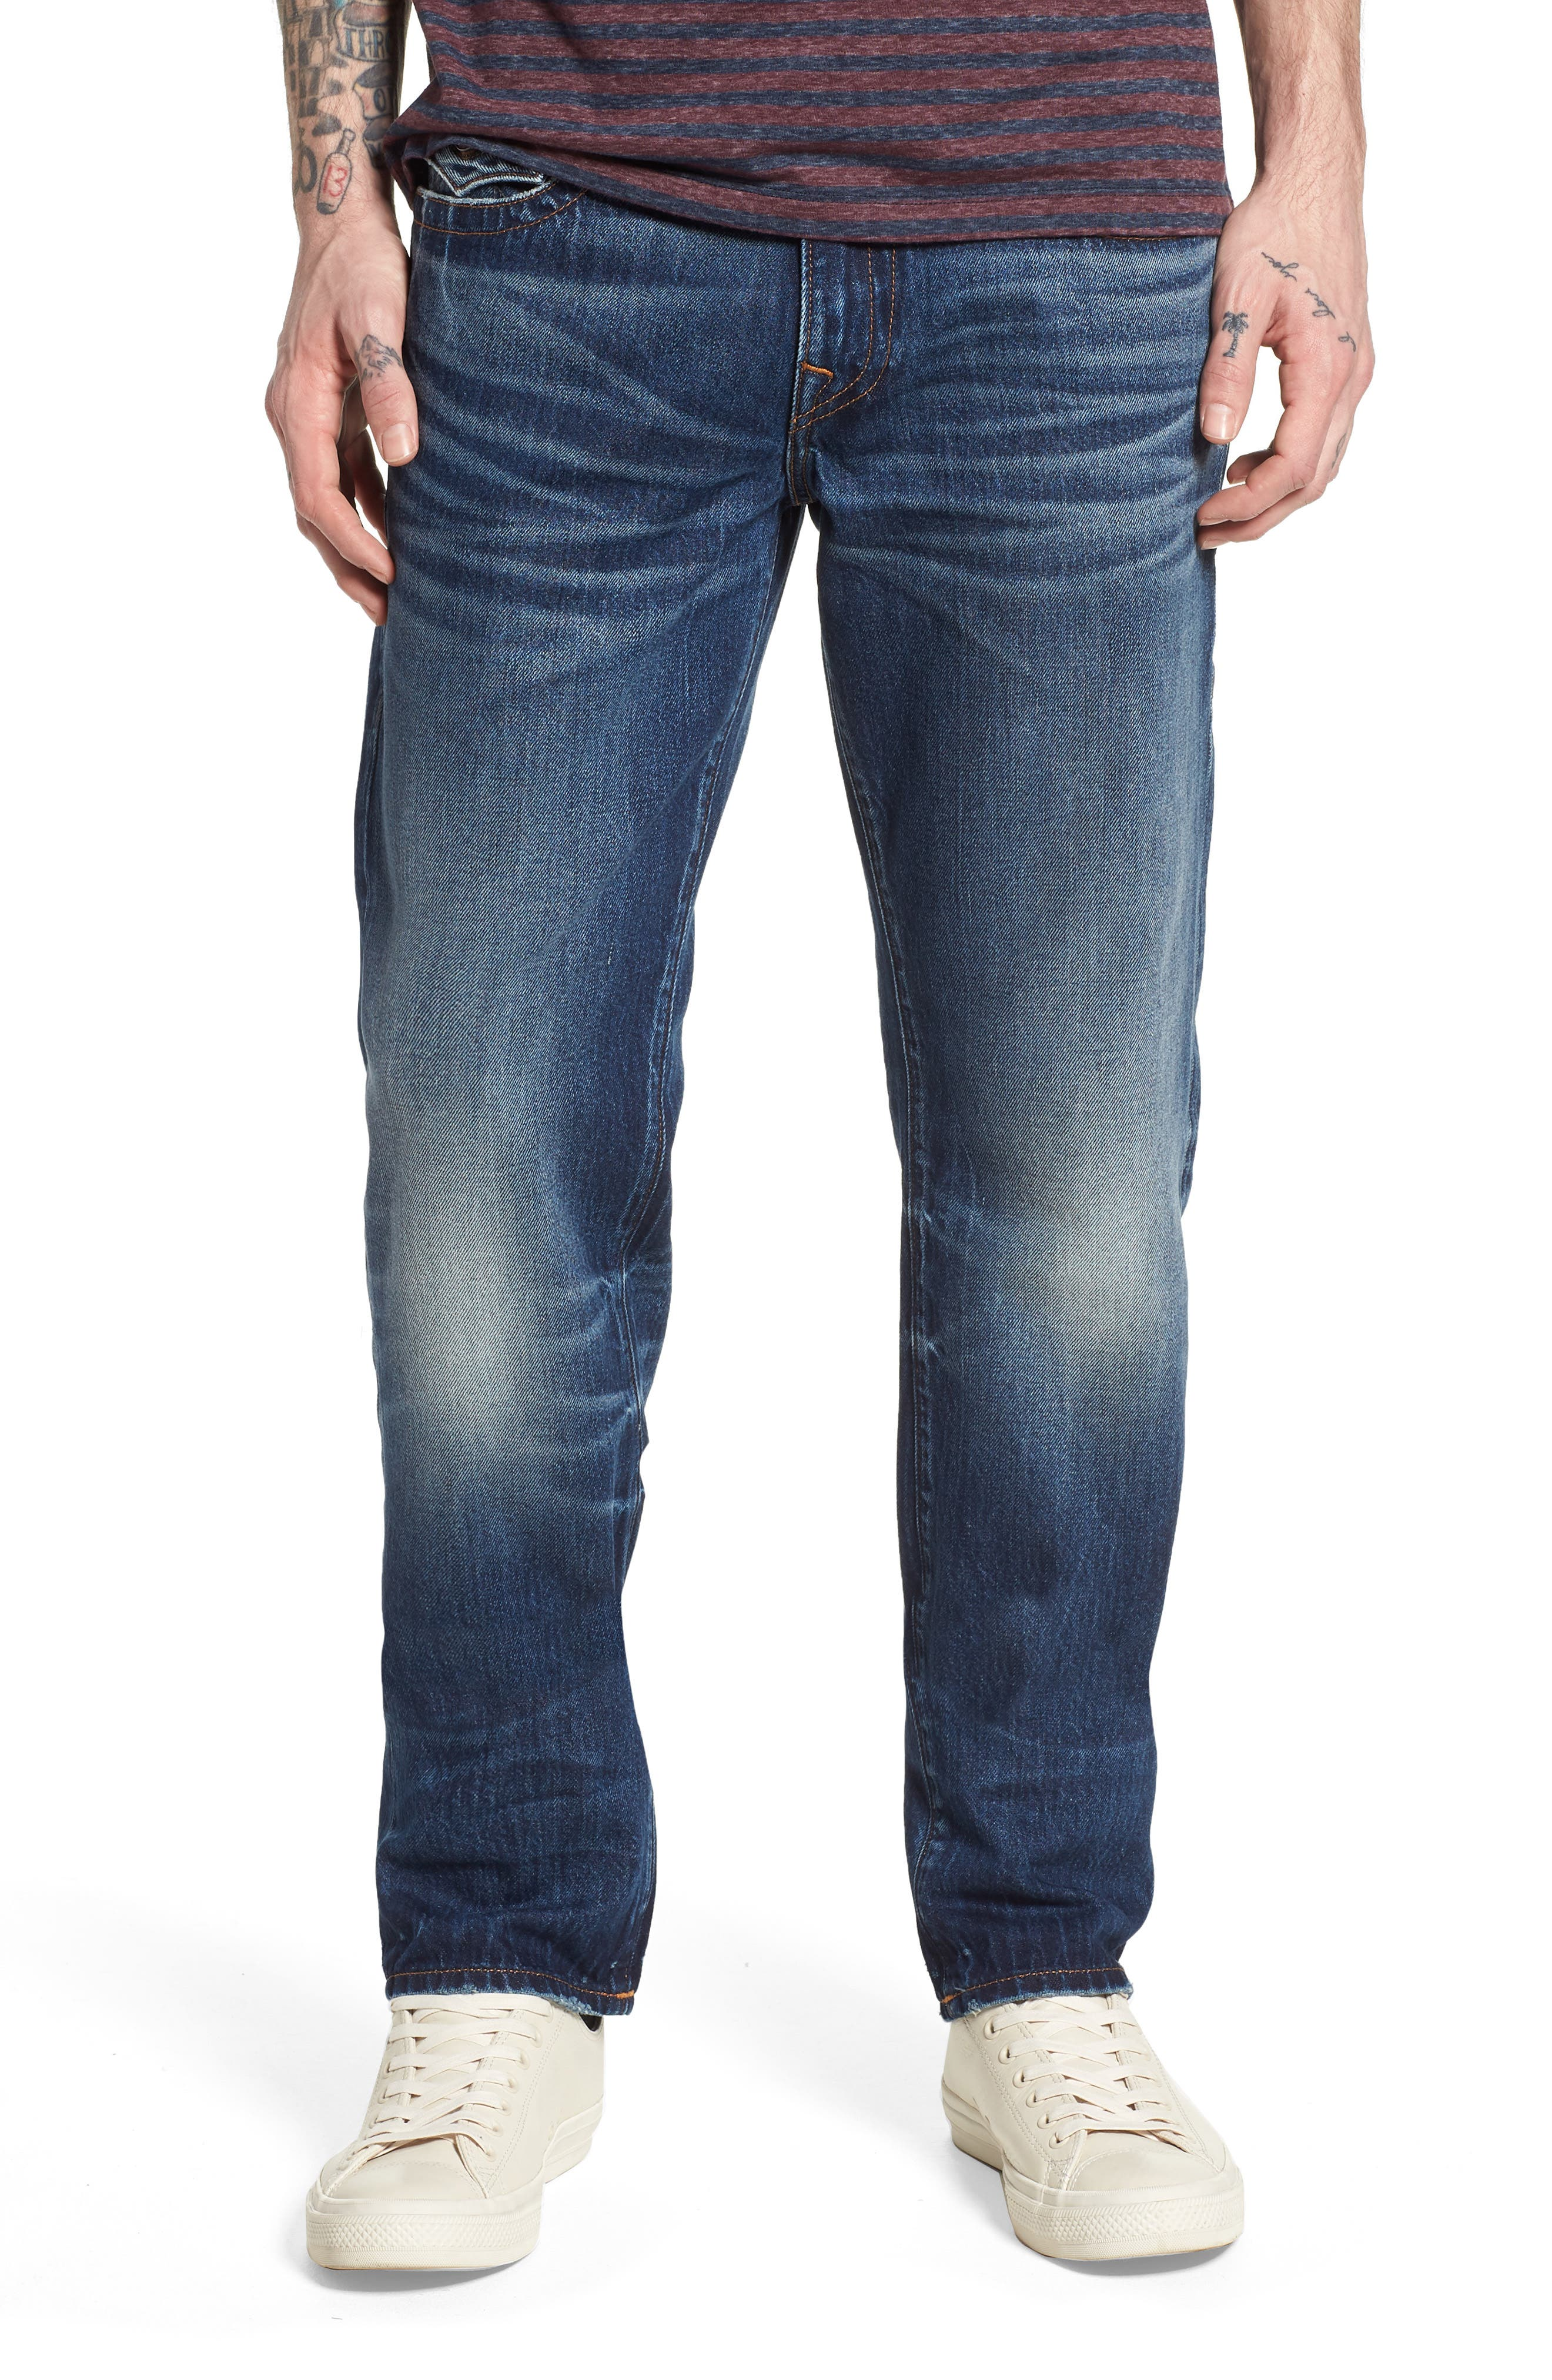 Geno Straight Leg Jeans,                         Main,                         color, Eqsd Dark After Hours